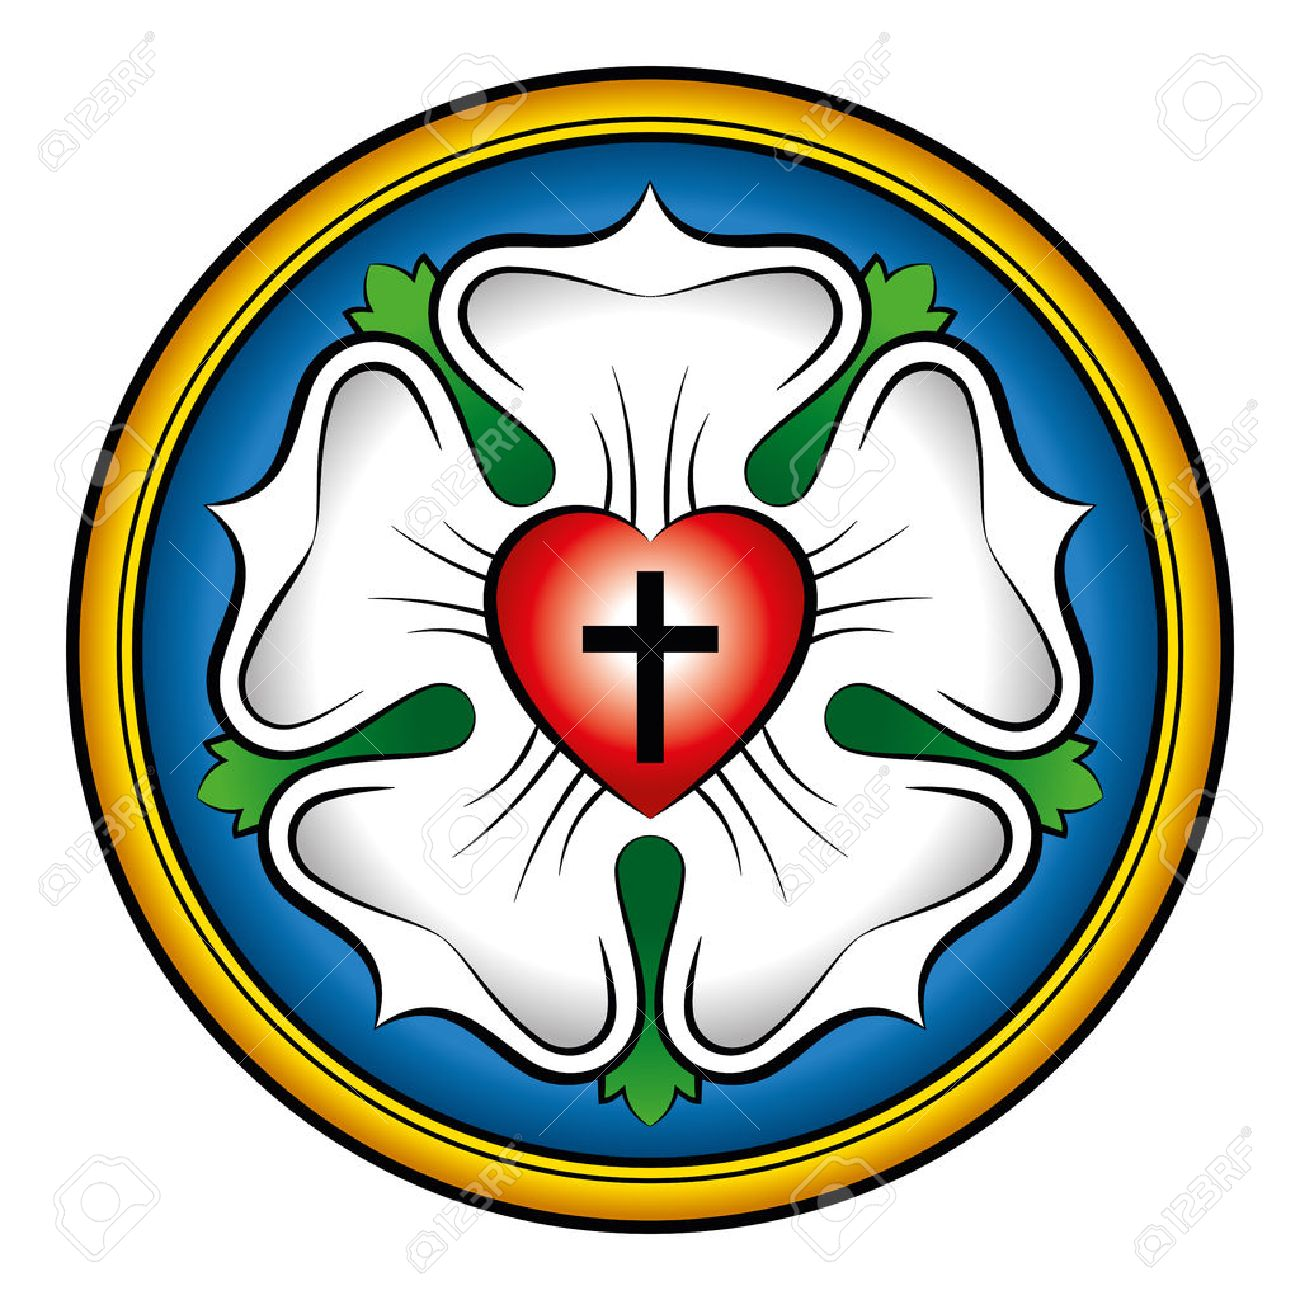 Luther rose colored calligraphic illustration. Also Luther seal, symbol of Lutheranism. Expression of theology and faith of Martin Luther, consisting of a cross, an heart, a single rose and a ring. Standard-Bild - 64064301